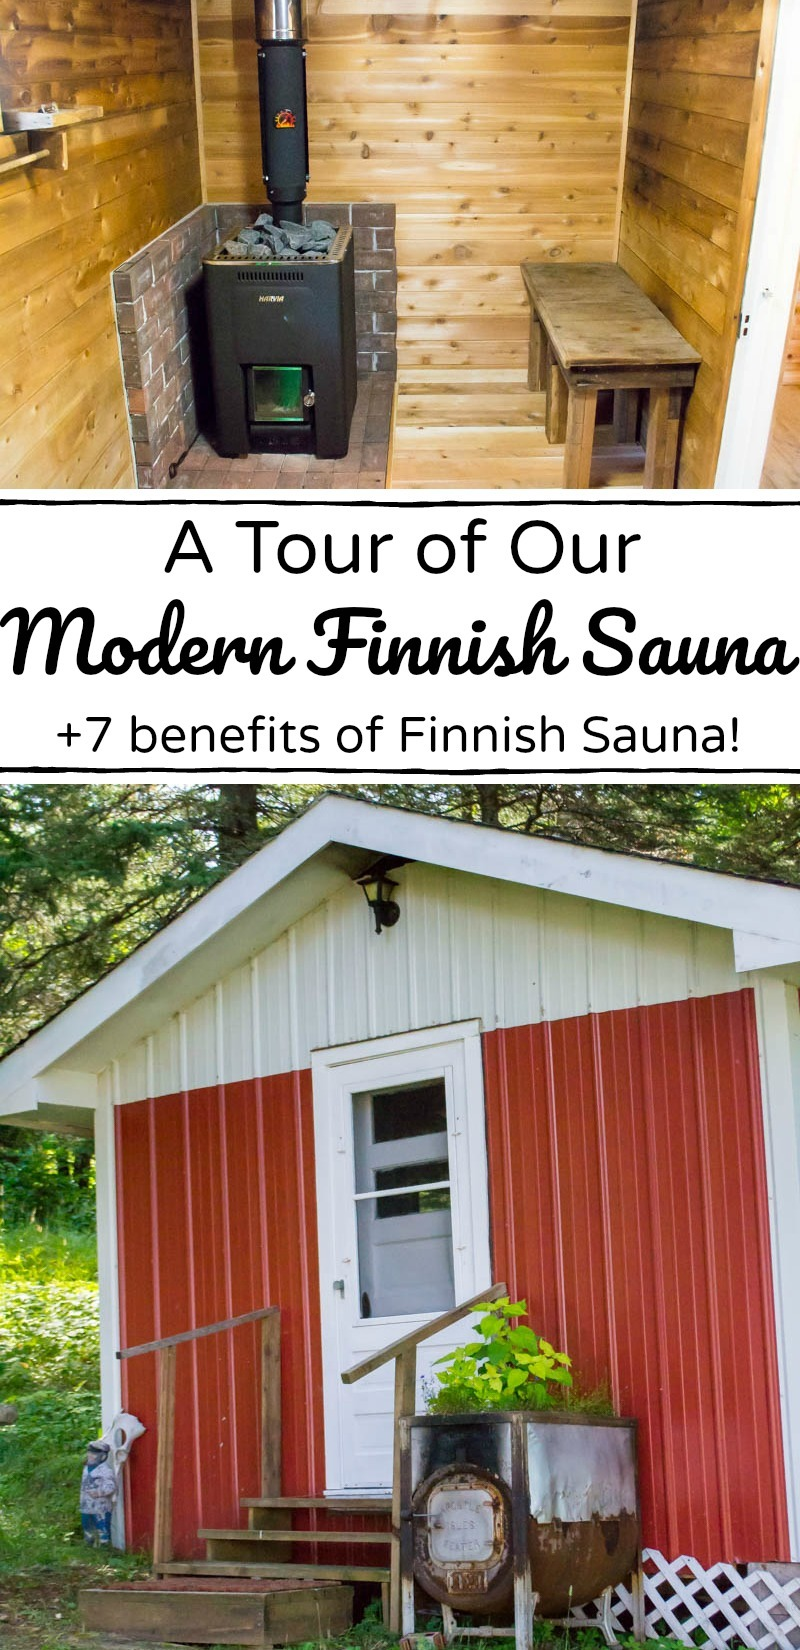 inside and outside photos of a modern Finnish sauna in Minnesota with text overlay